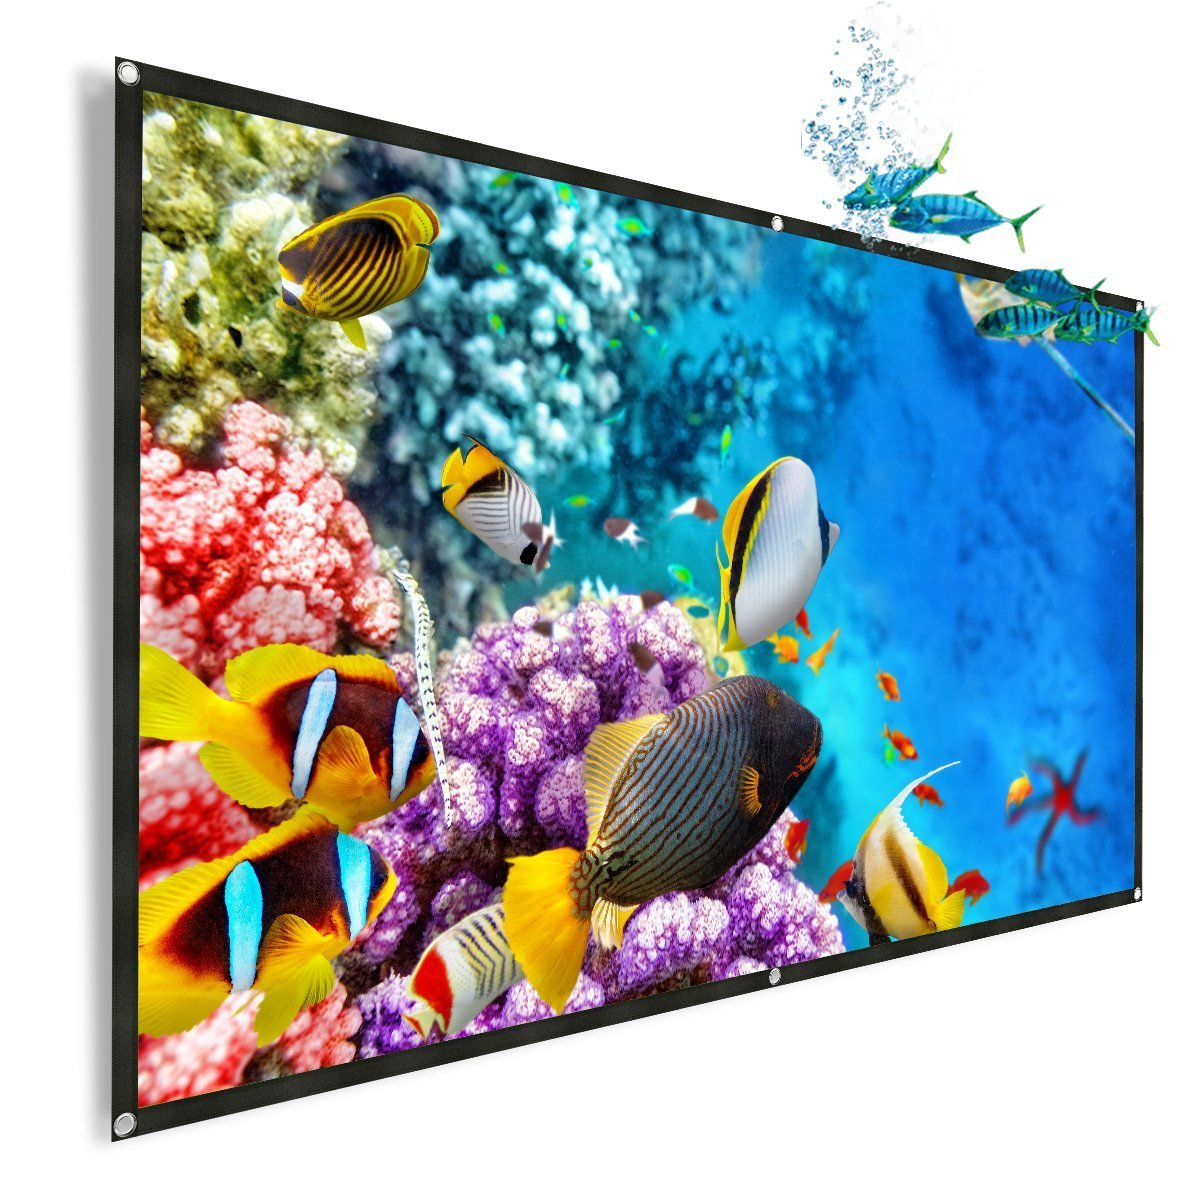 120-Inch Projector Screen, Thustar Outdoor Portable Projector Screen PVC Fabric 16:9 Suitable for HDTV, Sports, Movies and Presentations by General